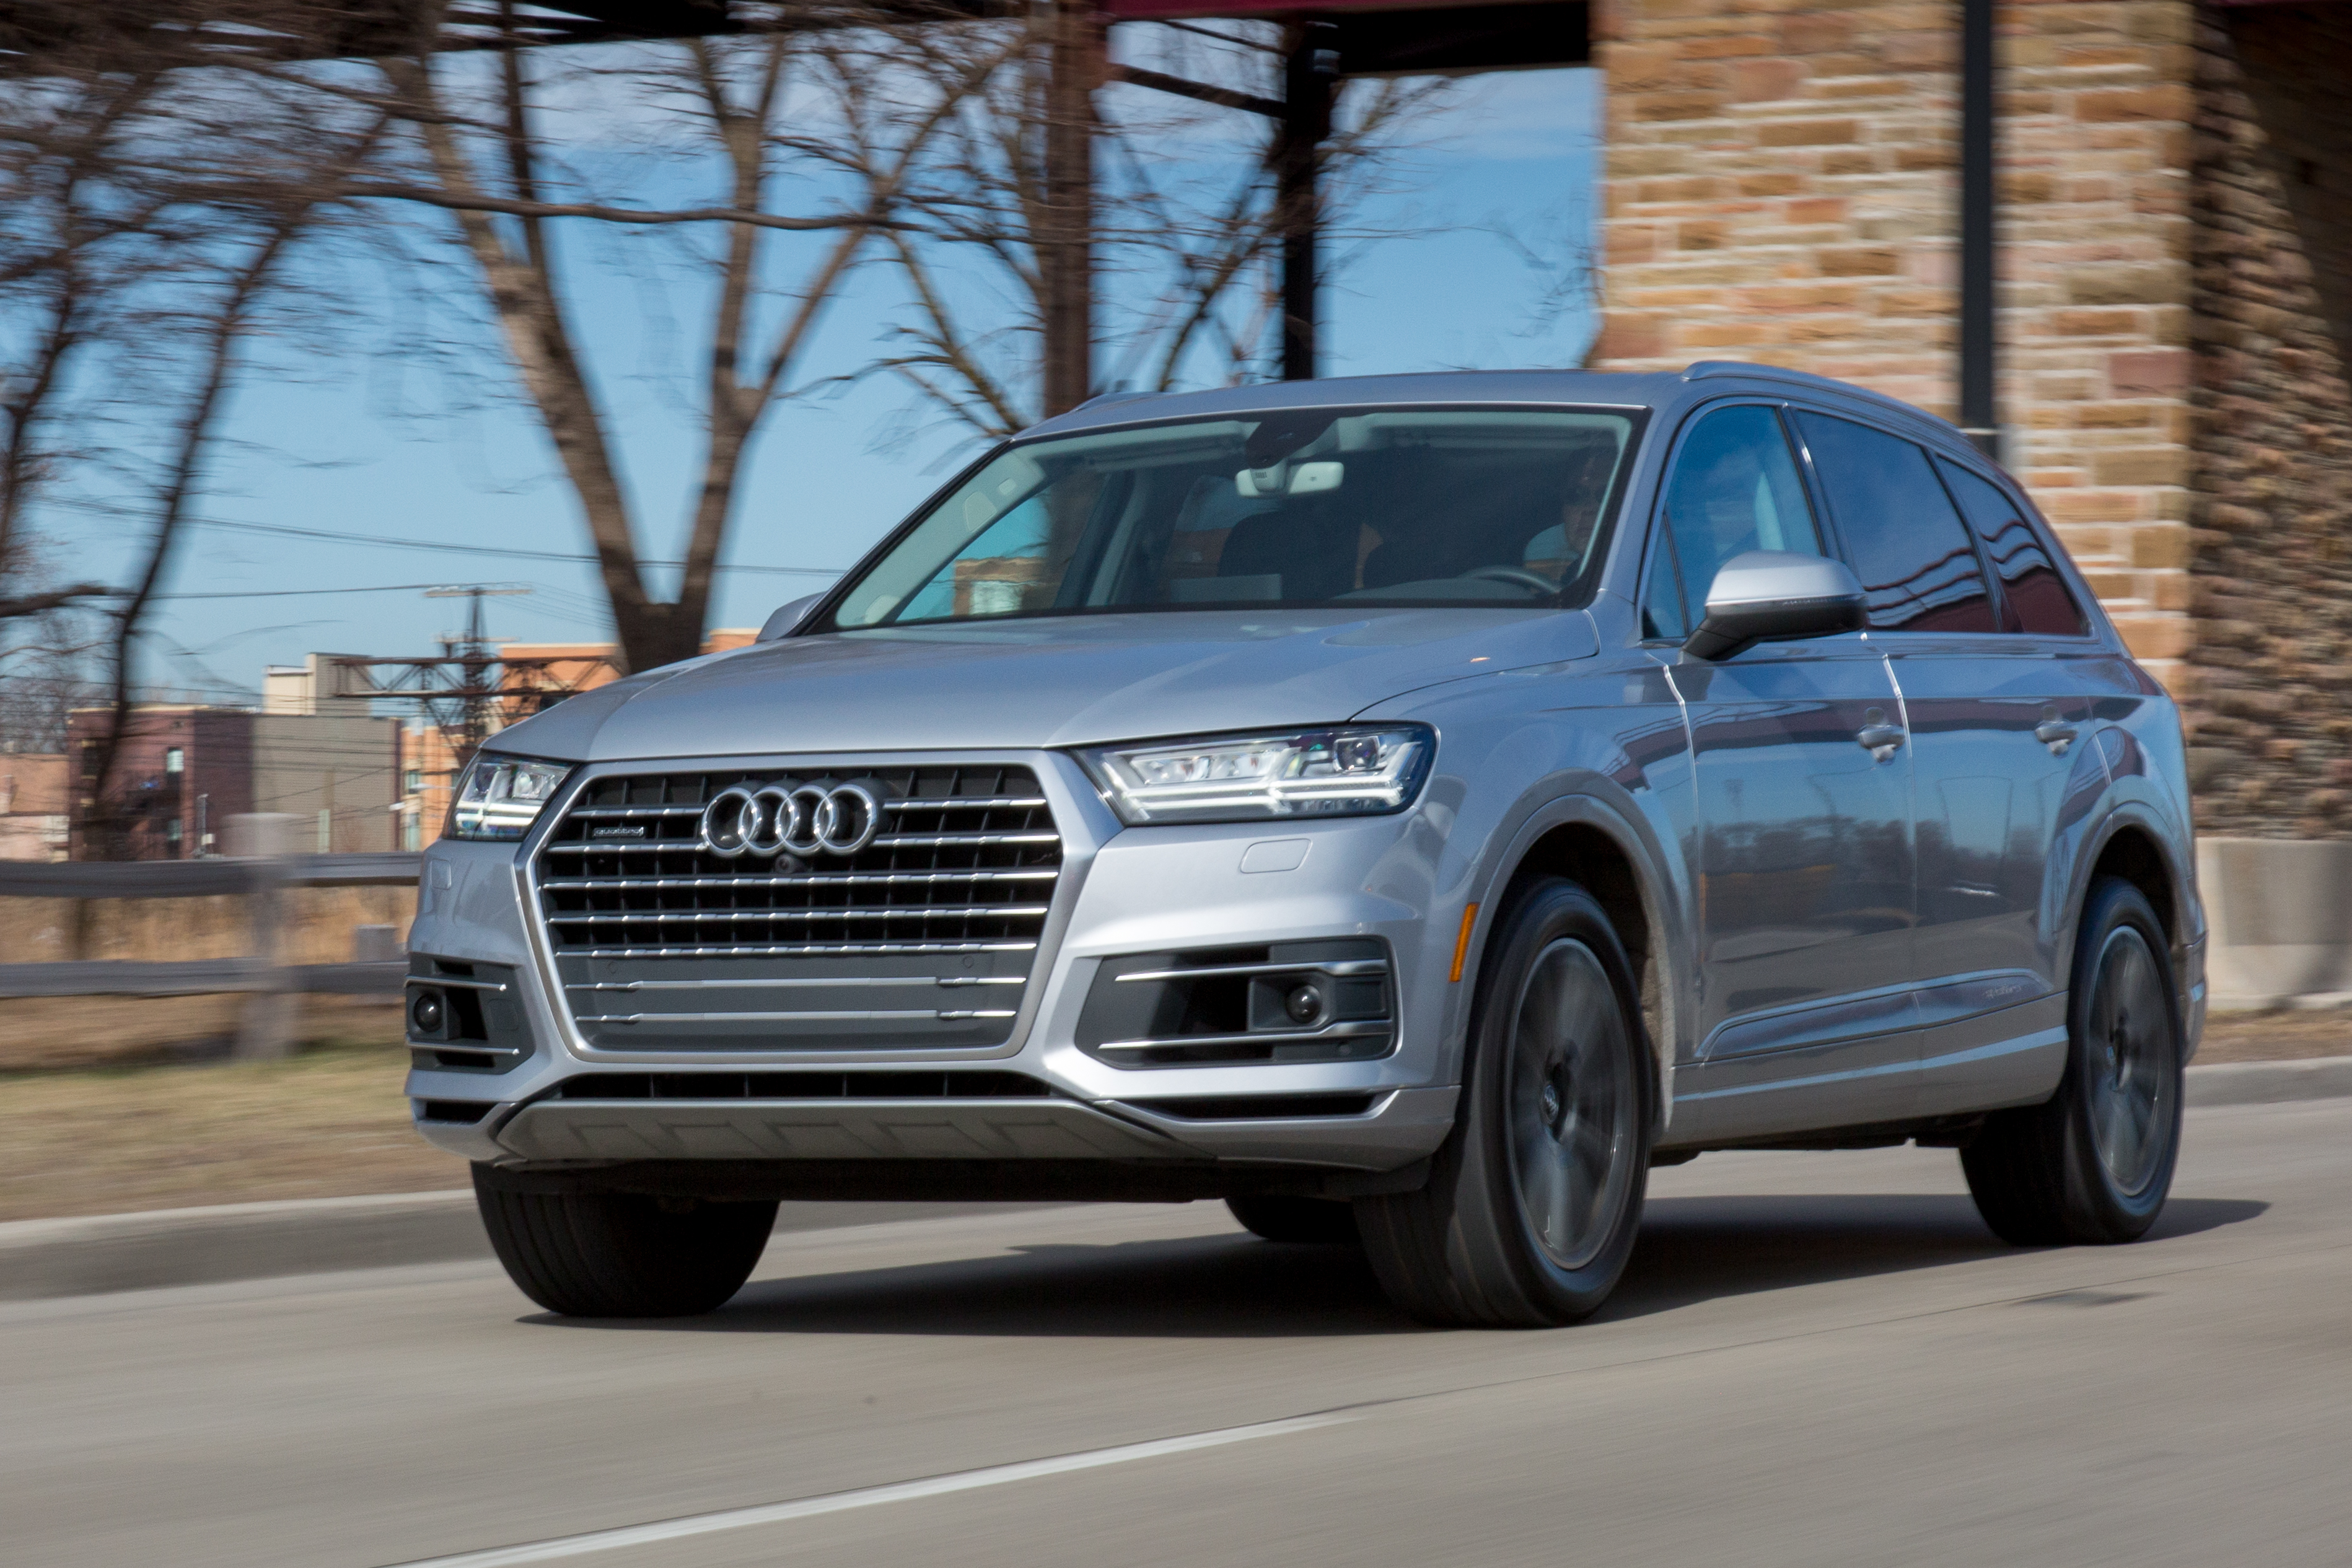 01-audi-q7-2018-angle-car-seat-check-dynamic-exterior-front-silver_ac